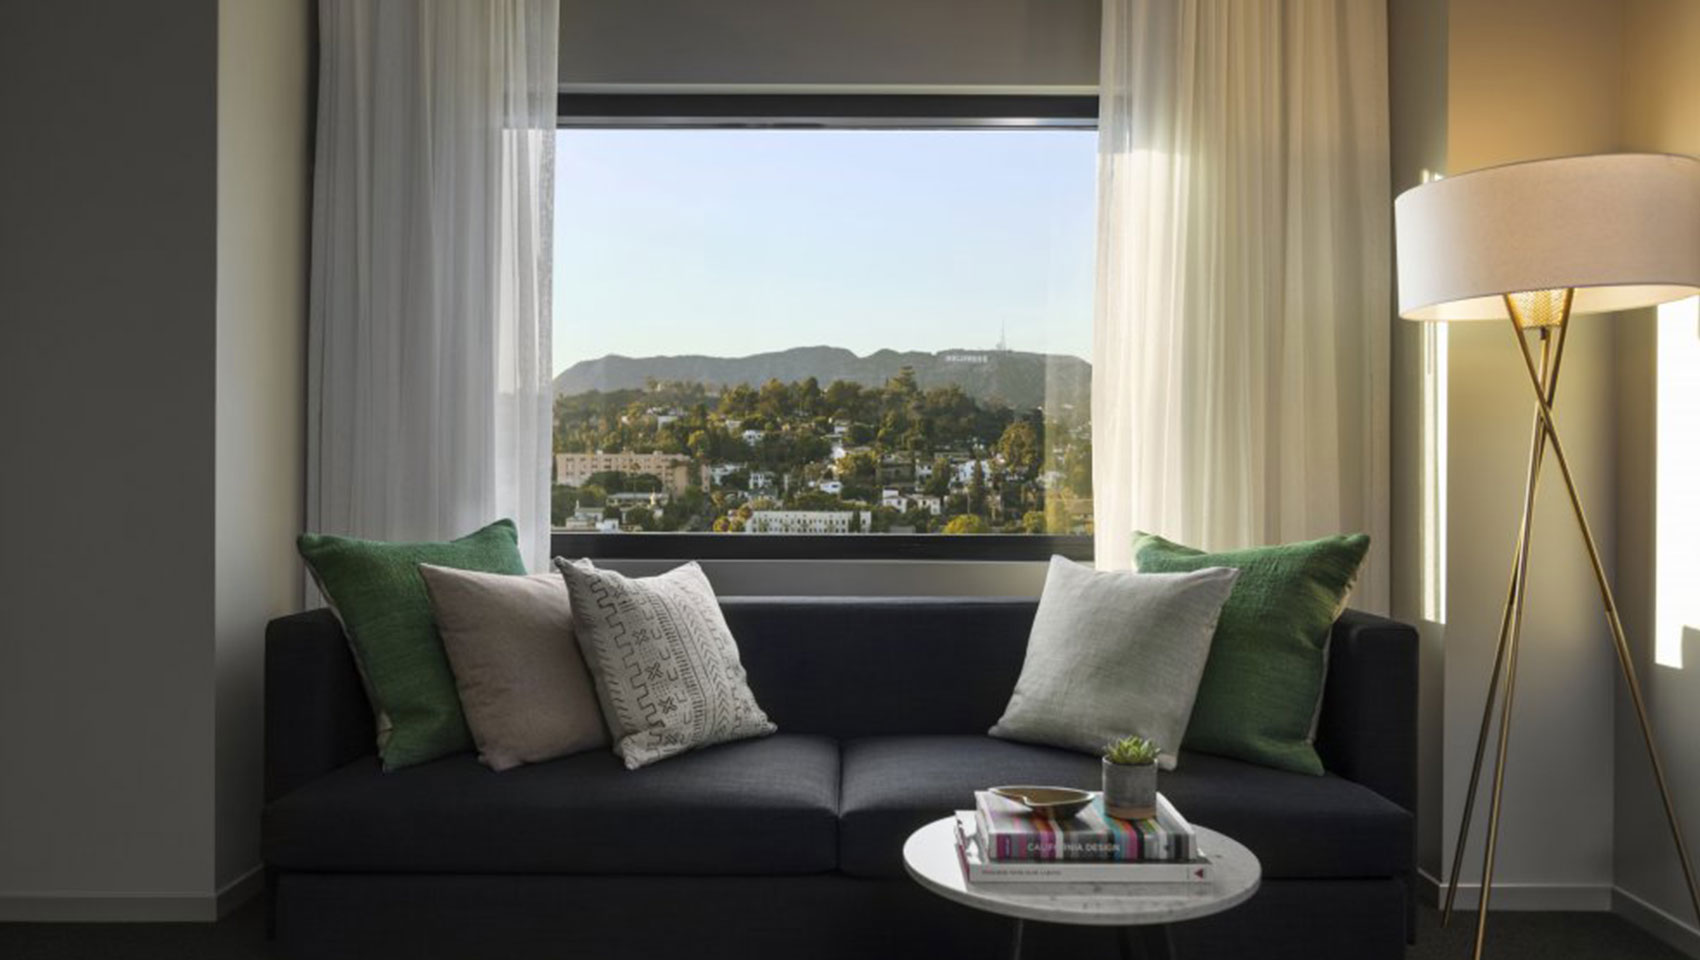 sofa-in-hollywood-hills-king-room-everly-e7885be6.jpg